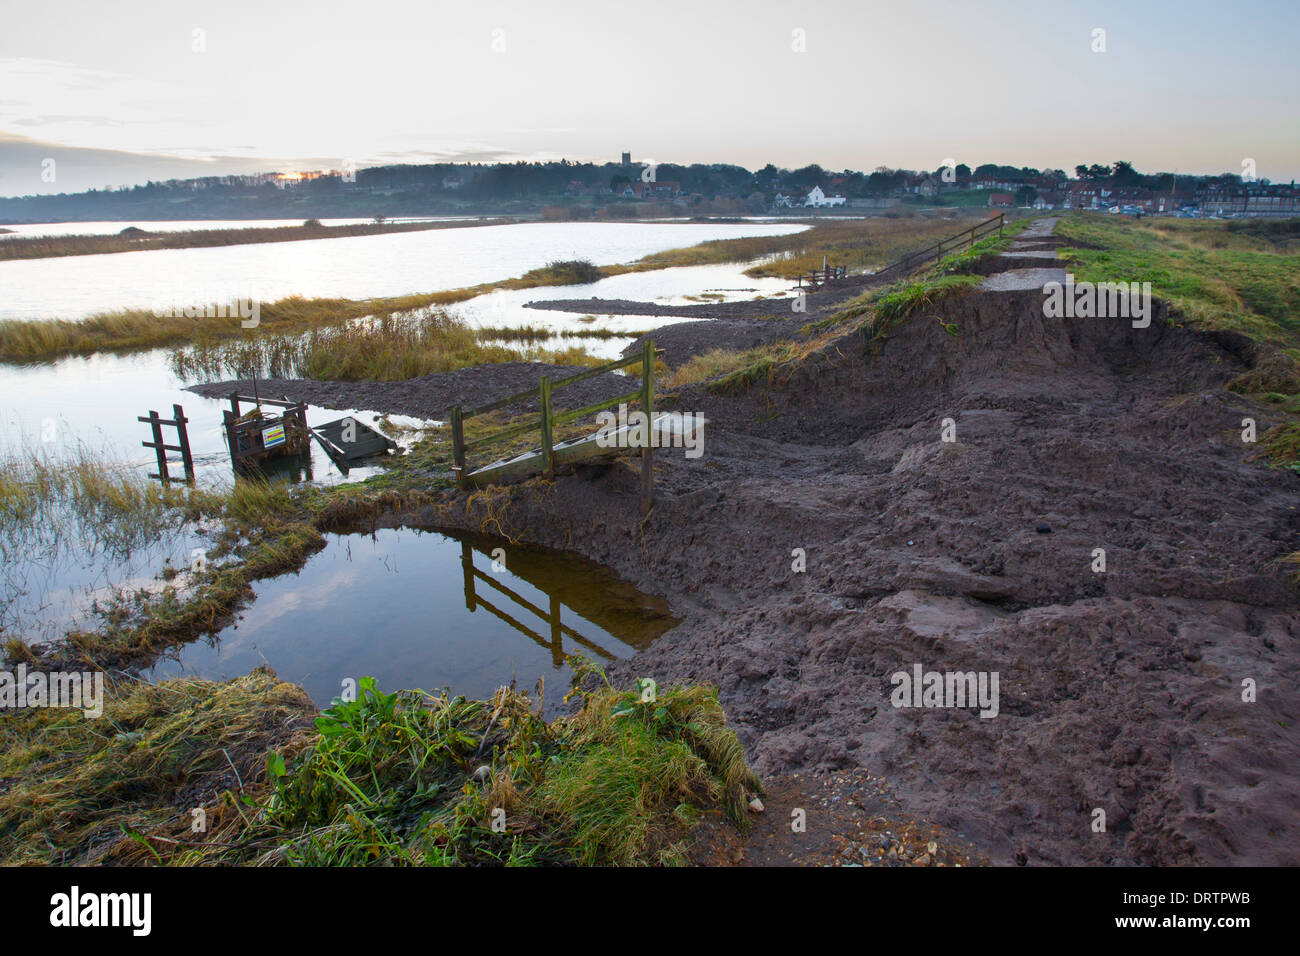 Sea defence damage at Blakeney in North Norfolk, East Anglia, UK, following the storm Surge in December 2013 Stock Photo